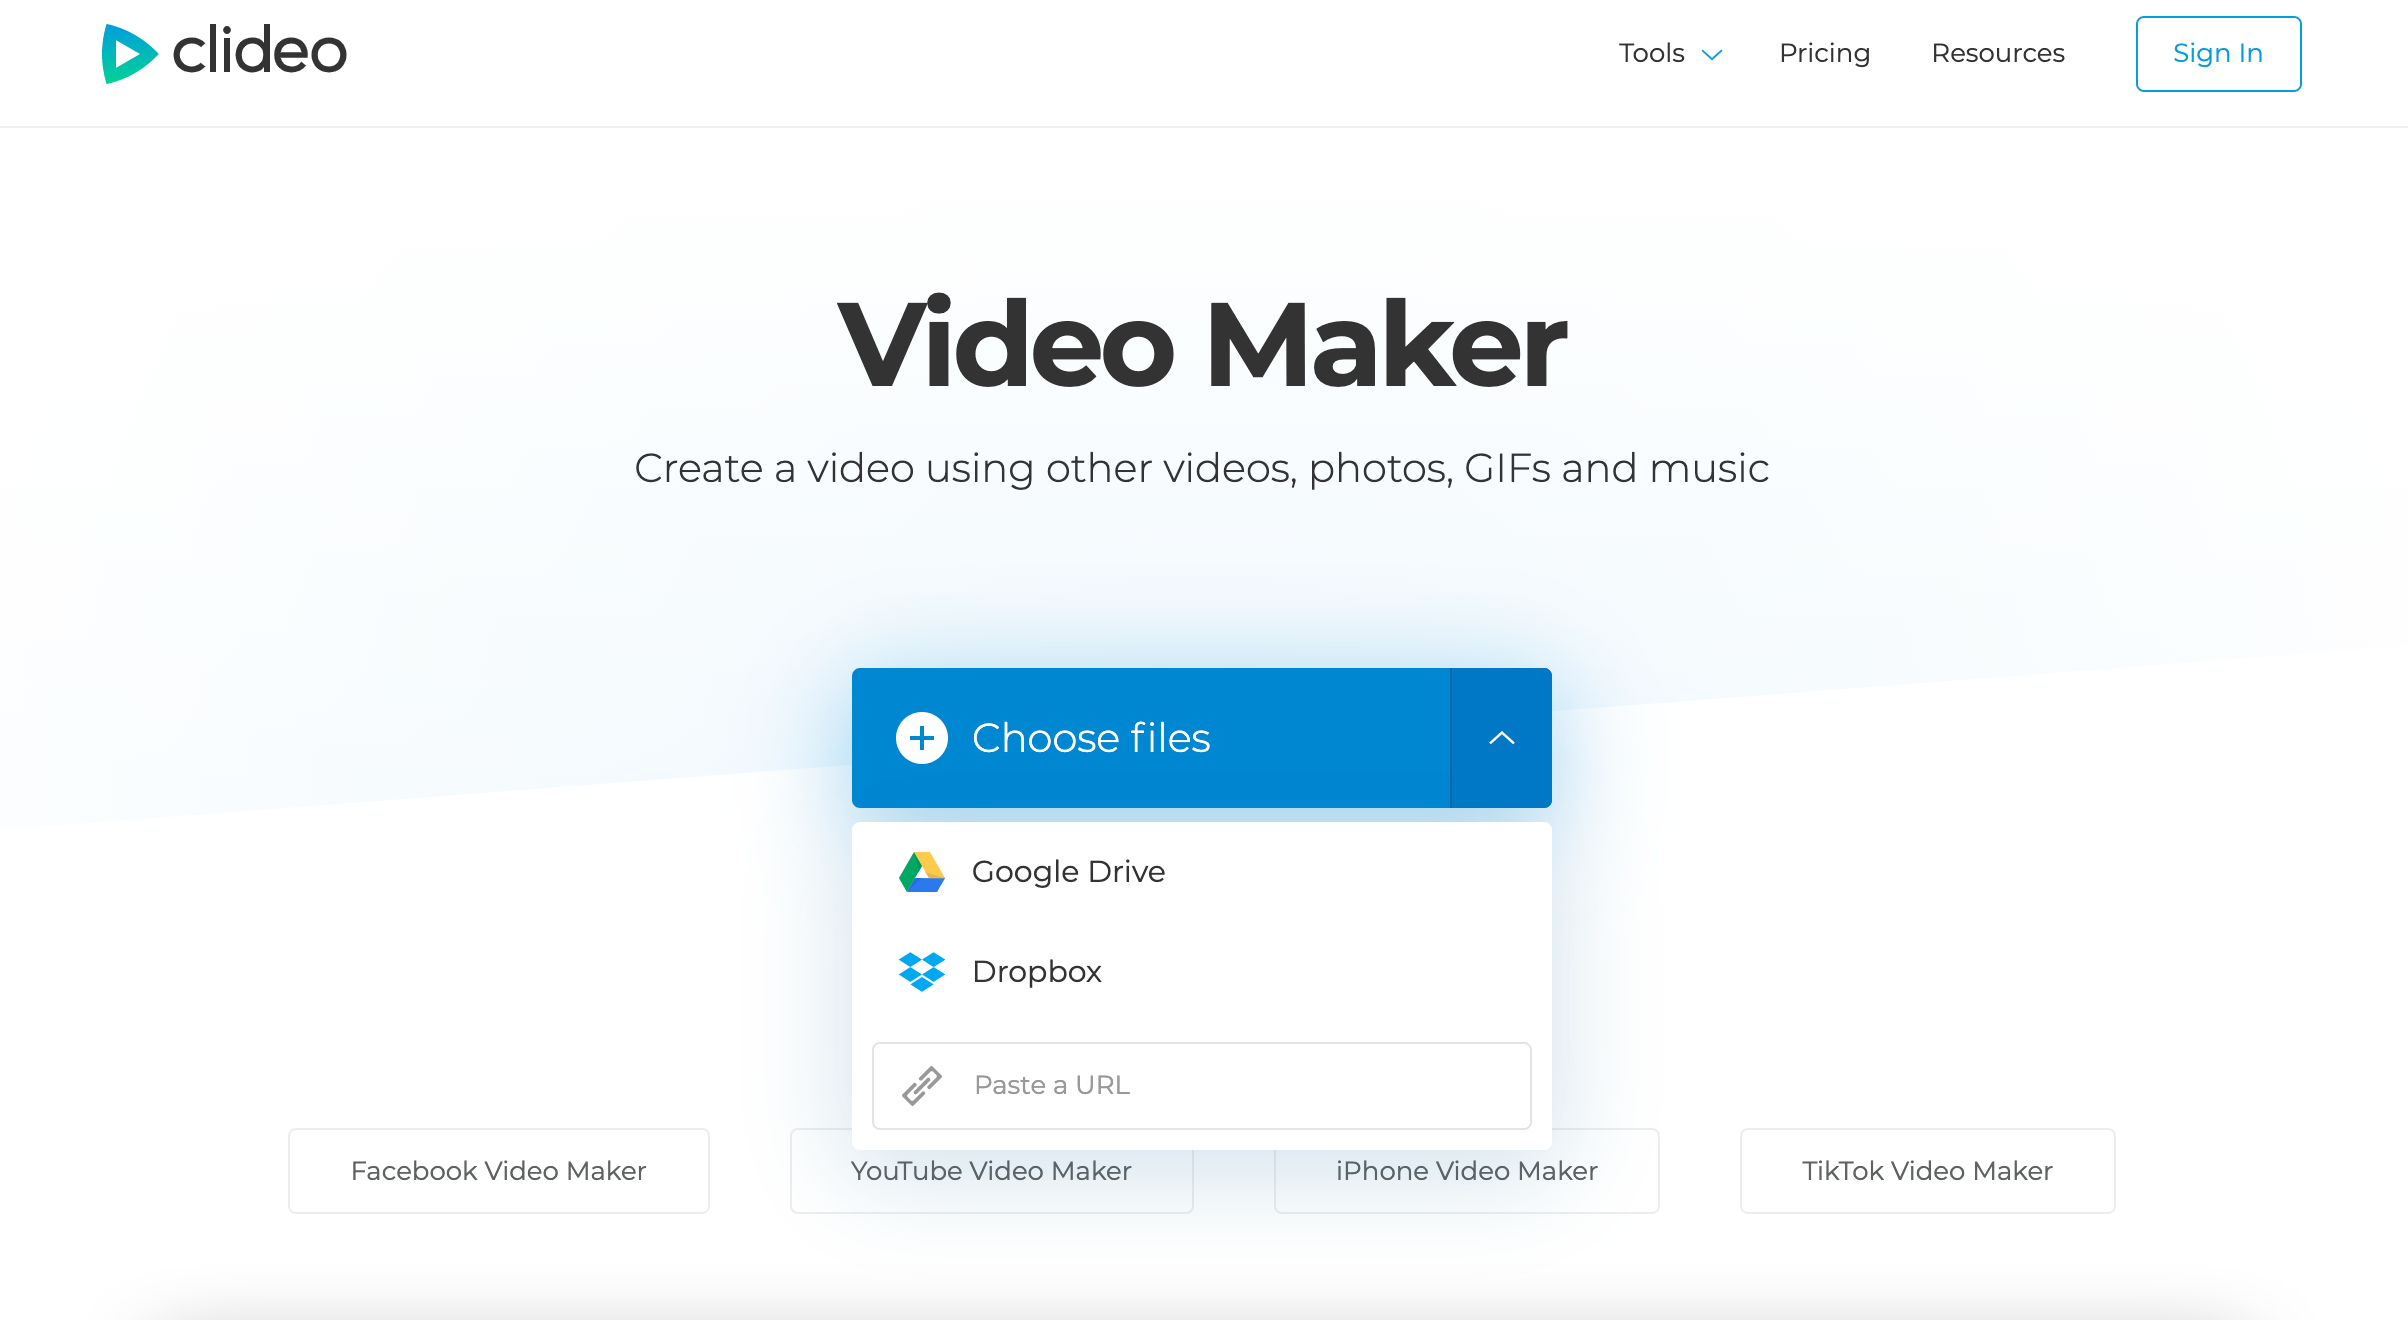 Upload pictures to video